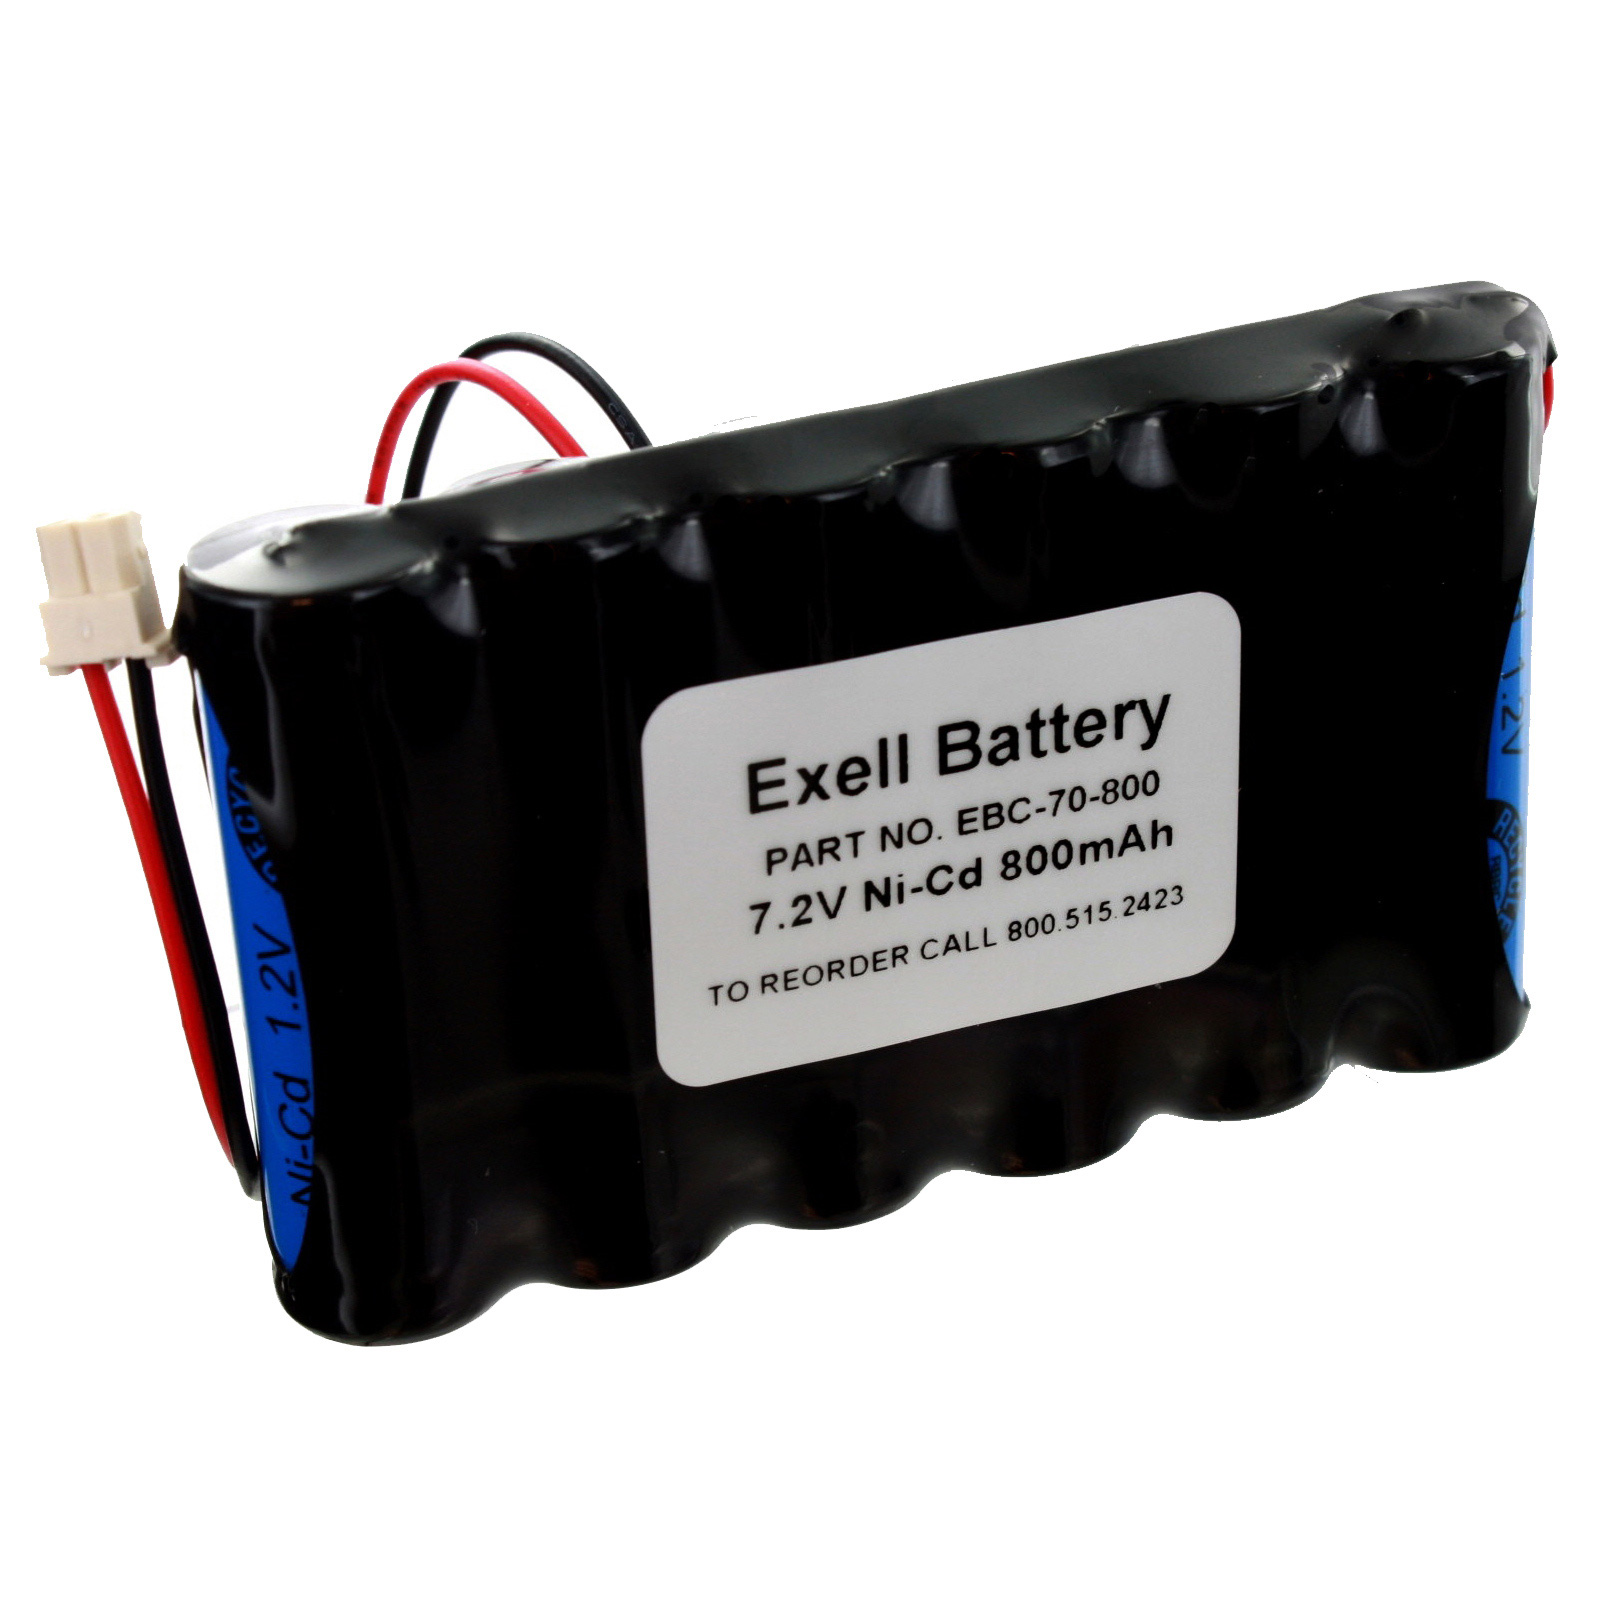 Replacement Battery For Security Alarm Systems 300 03864 1 L5210 Lynxr L3000 26190041166 Ebay